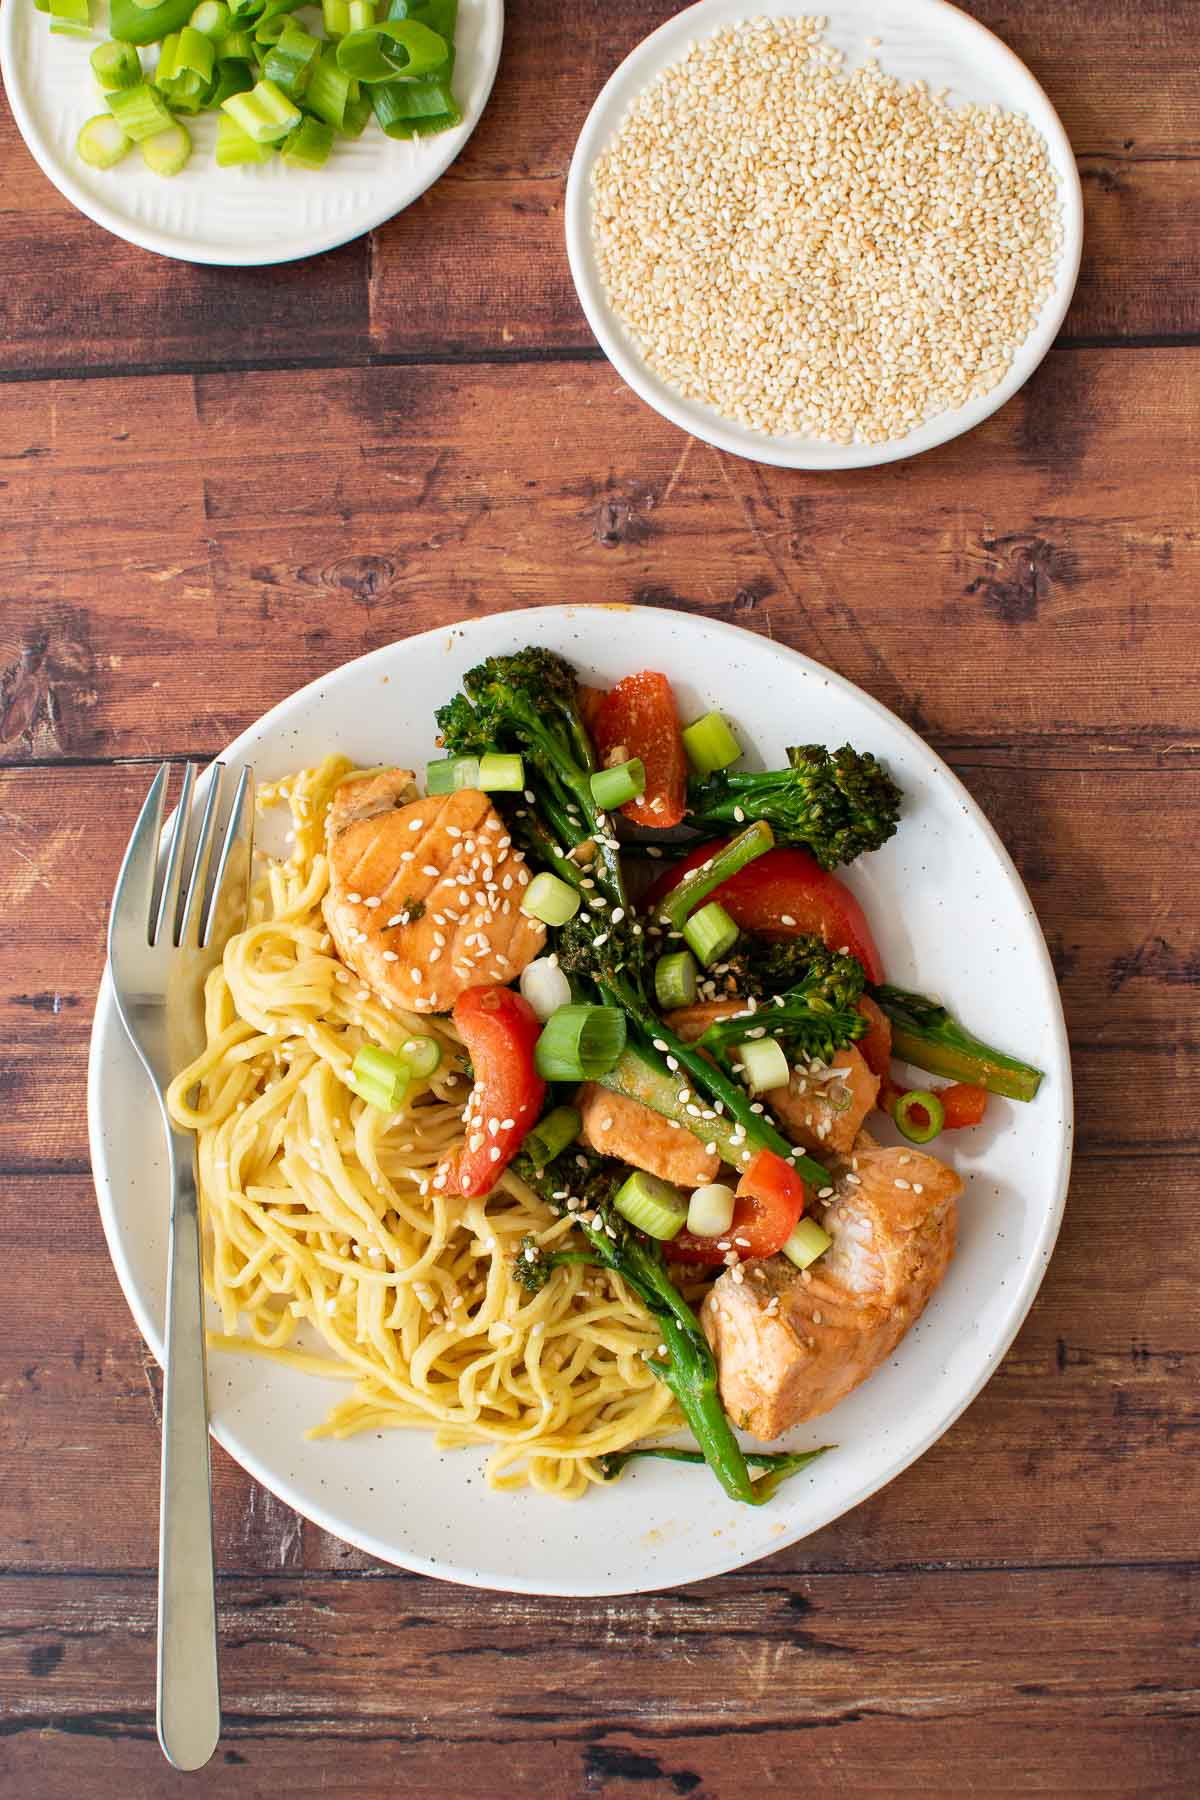 A plate with salmon and broccoli stir fry with noodles. Sesame seeds and scallions on the side.